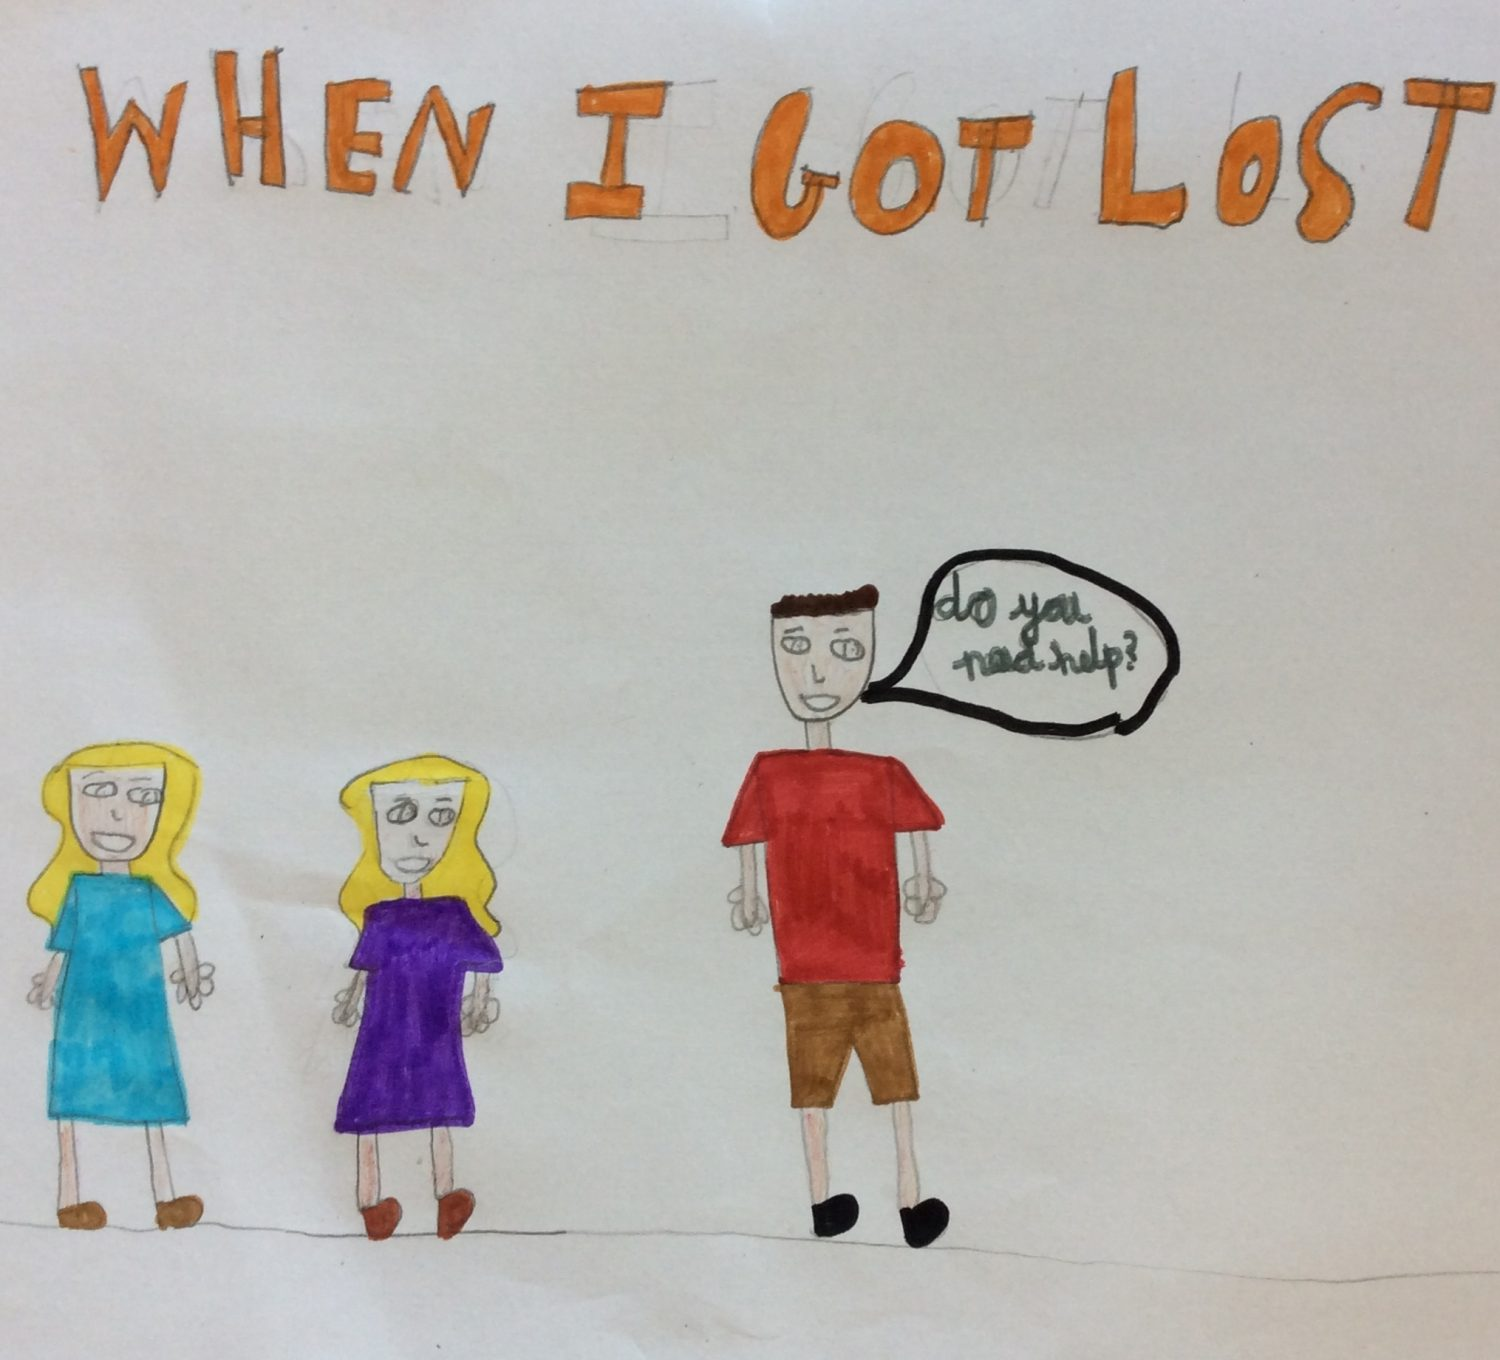 childrens drawing showing three people and the title 'when I got lost'